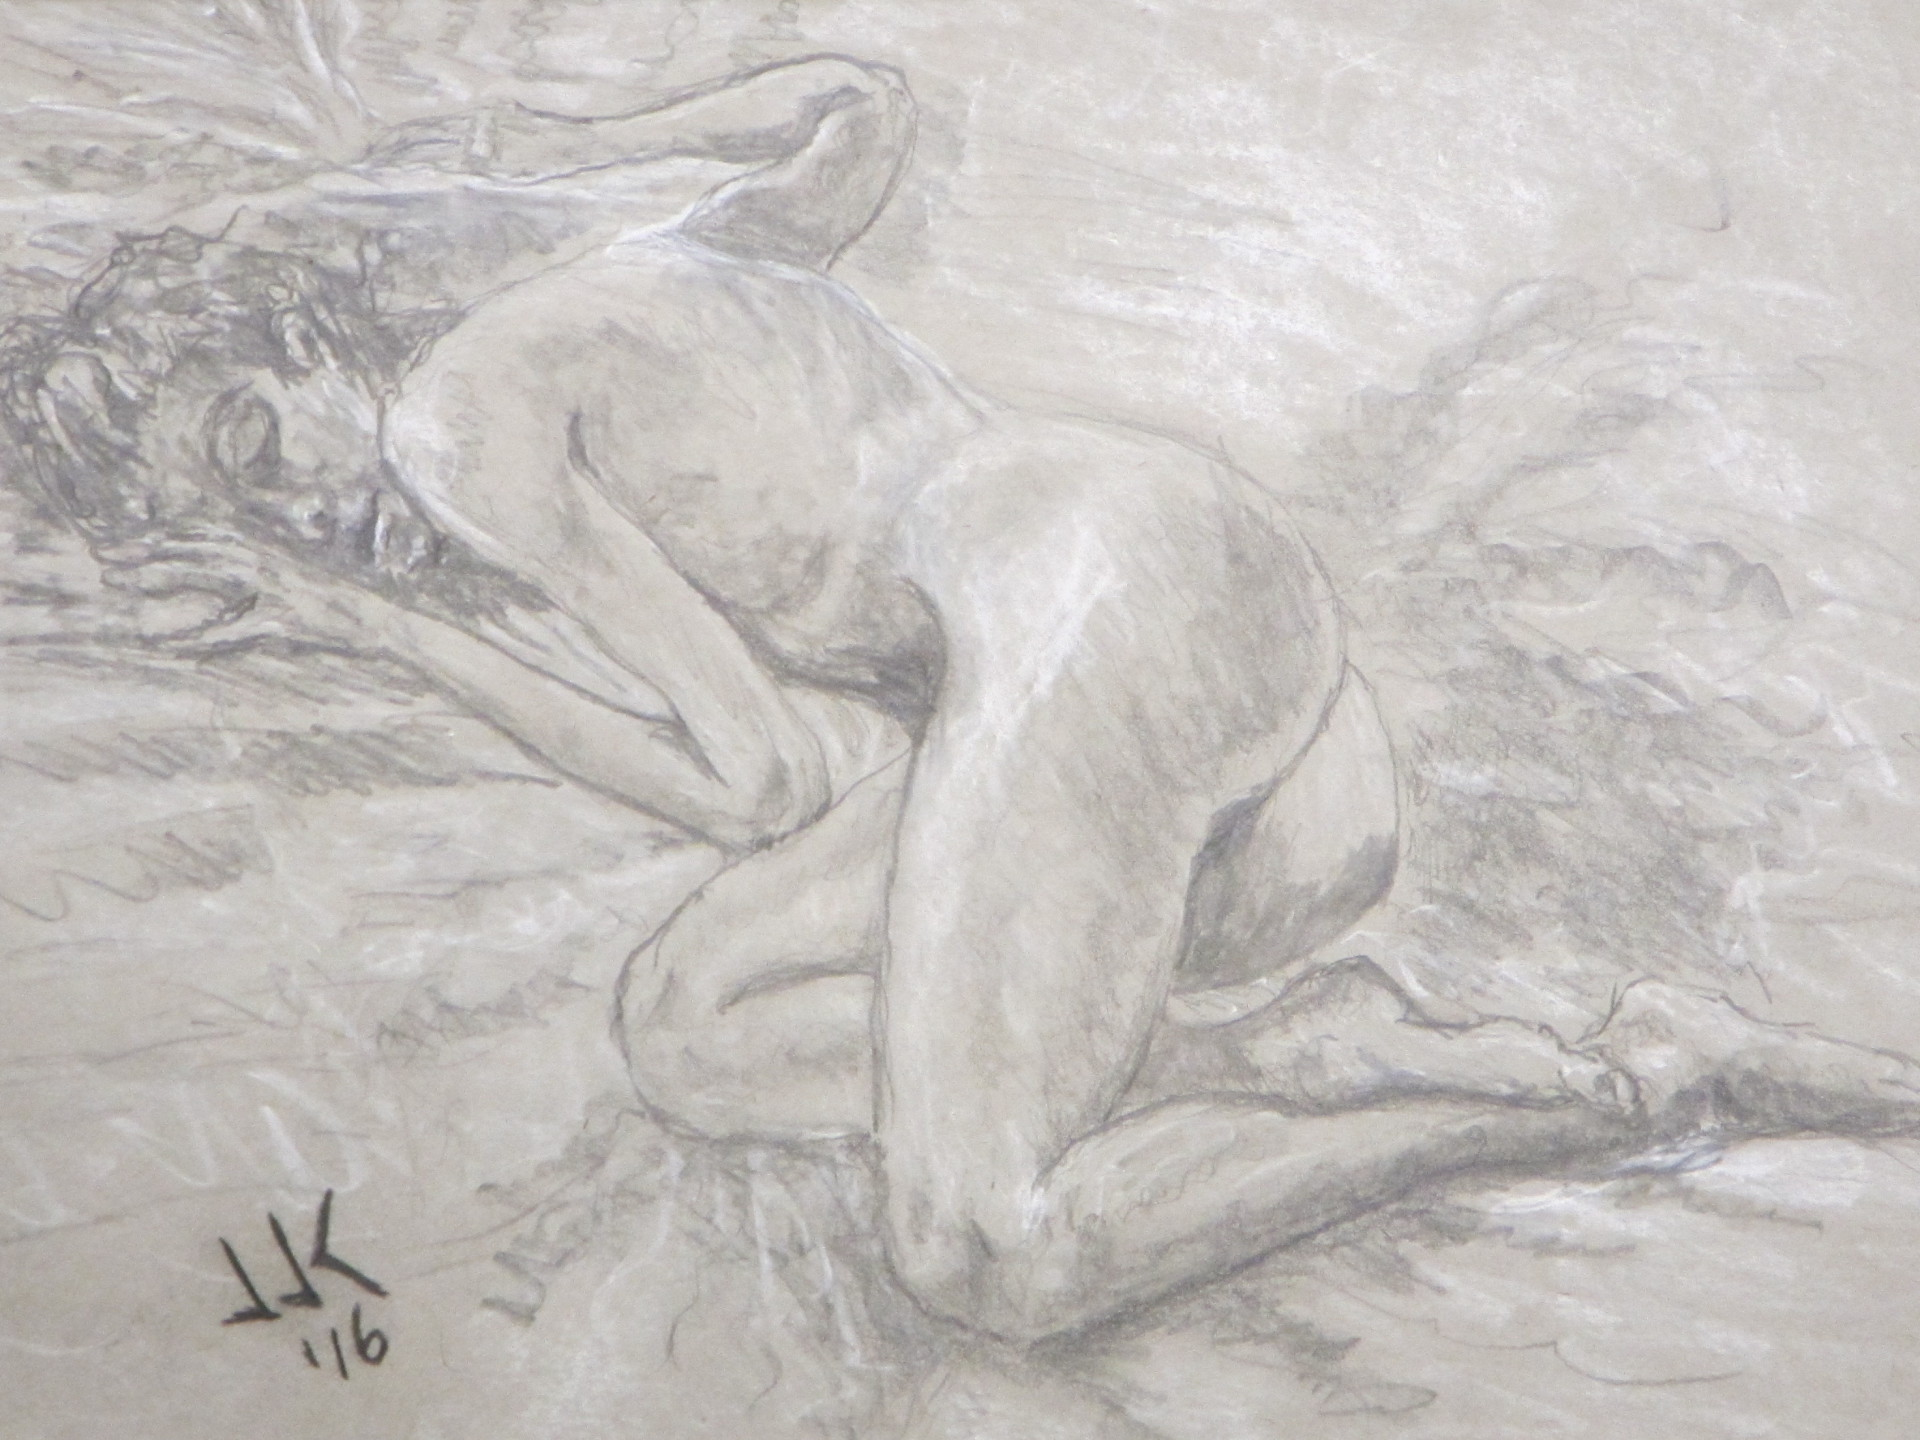 Pencil and white chalk pencil drawing on grey paper of a nude woman sleeping on a bed.